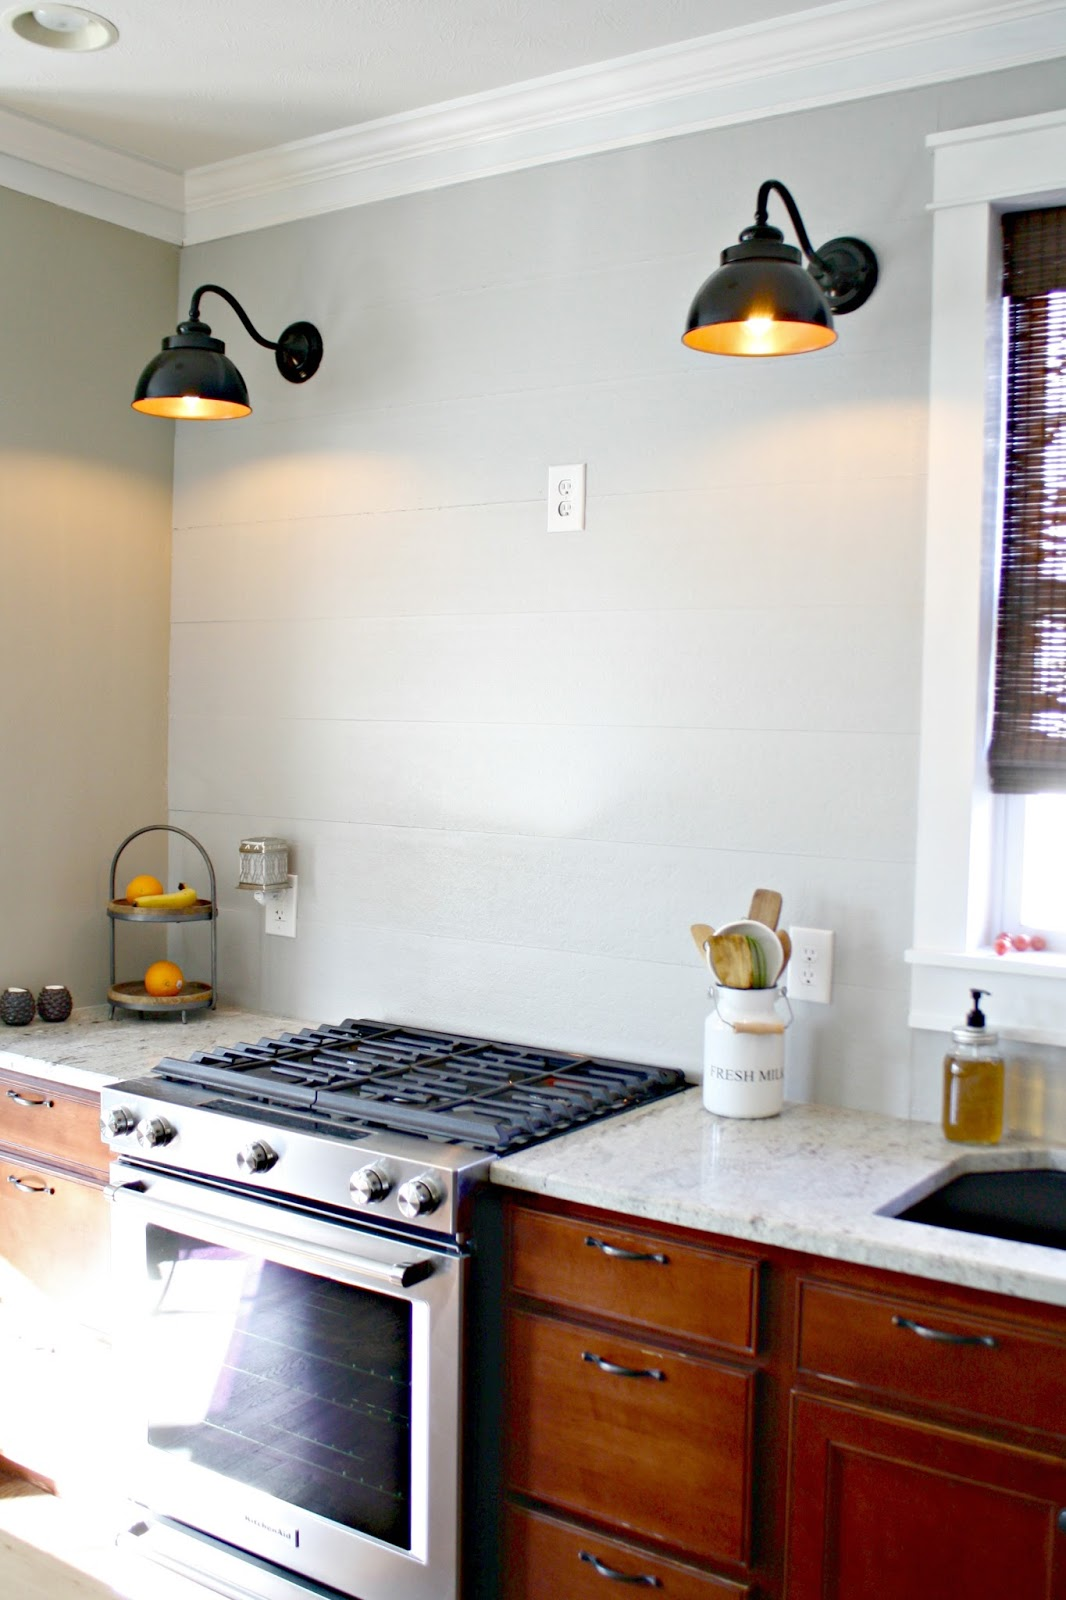 Kitchen Exhaust Vent Cover Black And White Towels A Diy(ish) Wood Hood From Thrifty Decor Chick